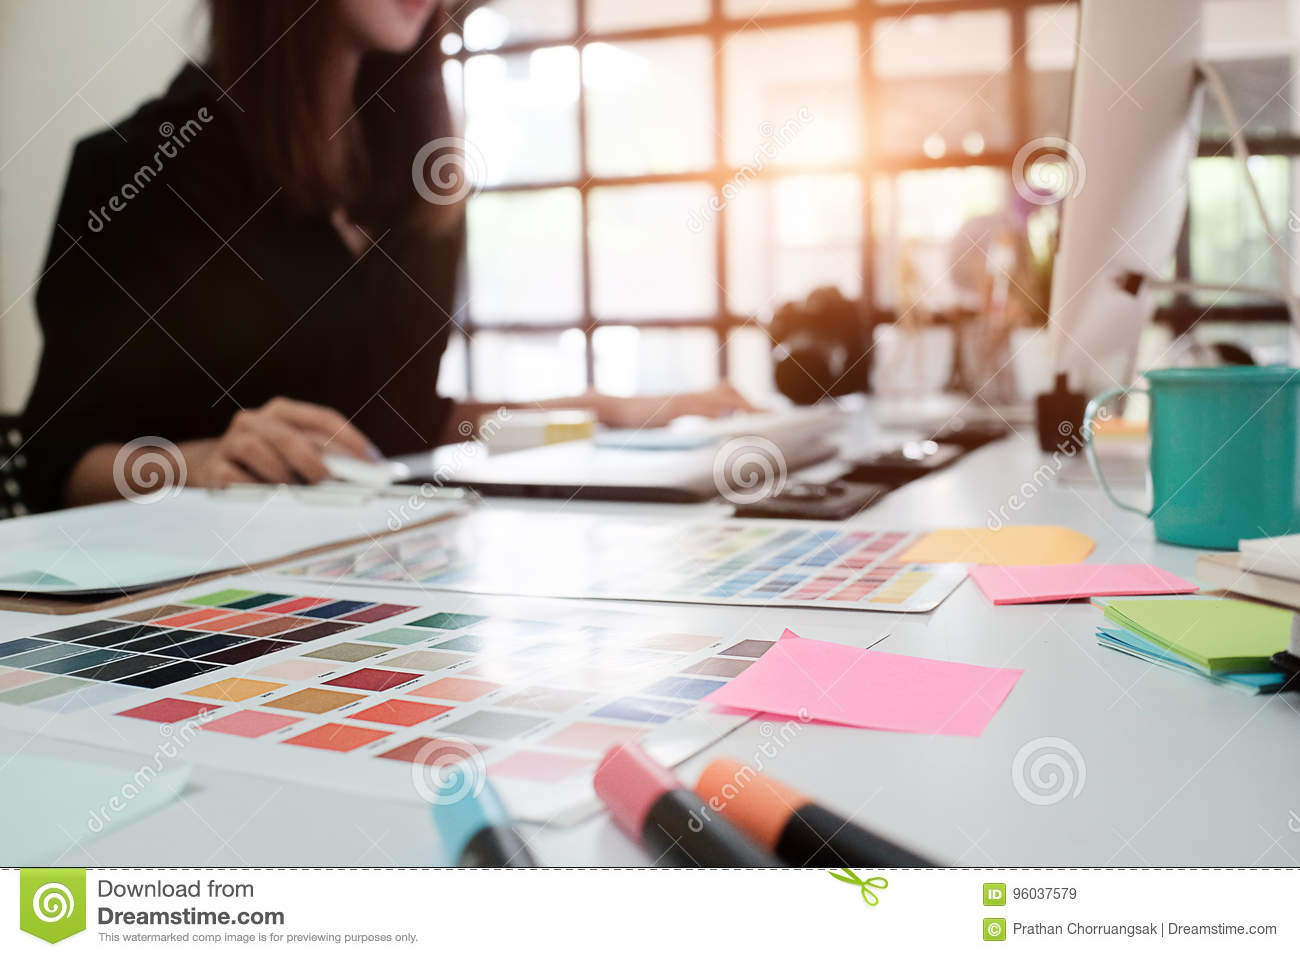 Selective focus on creative table and woman graphic design blur